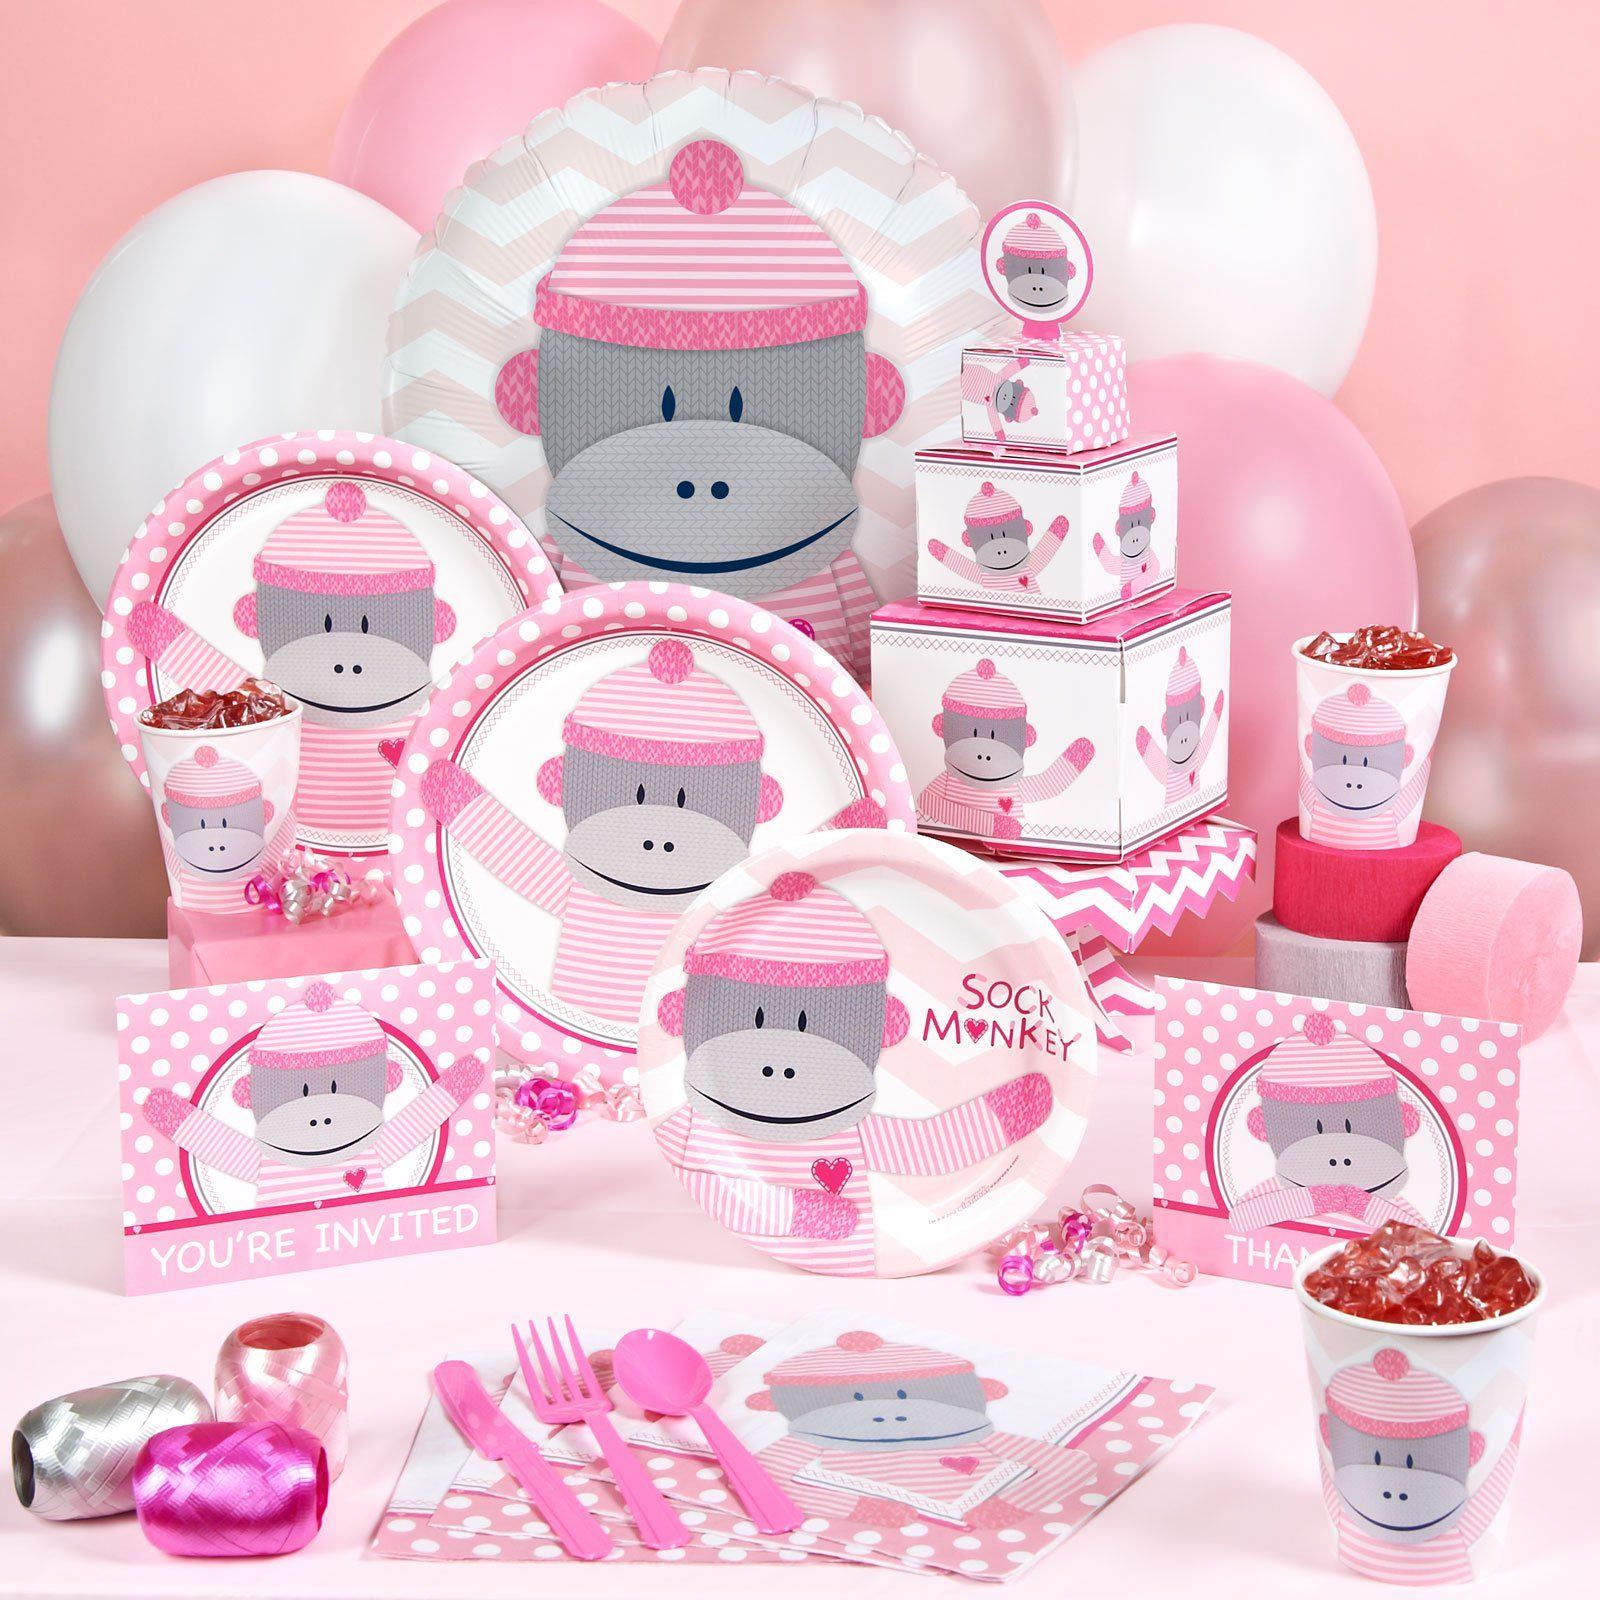 Sock Monkey Pink Baby Shower Party Supplies 94431 Baby Shower